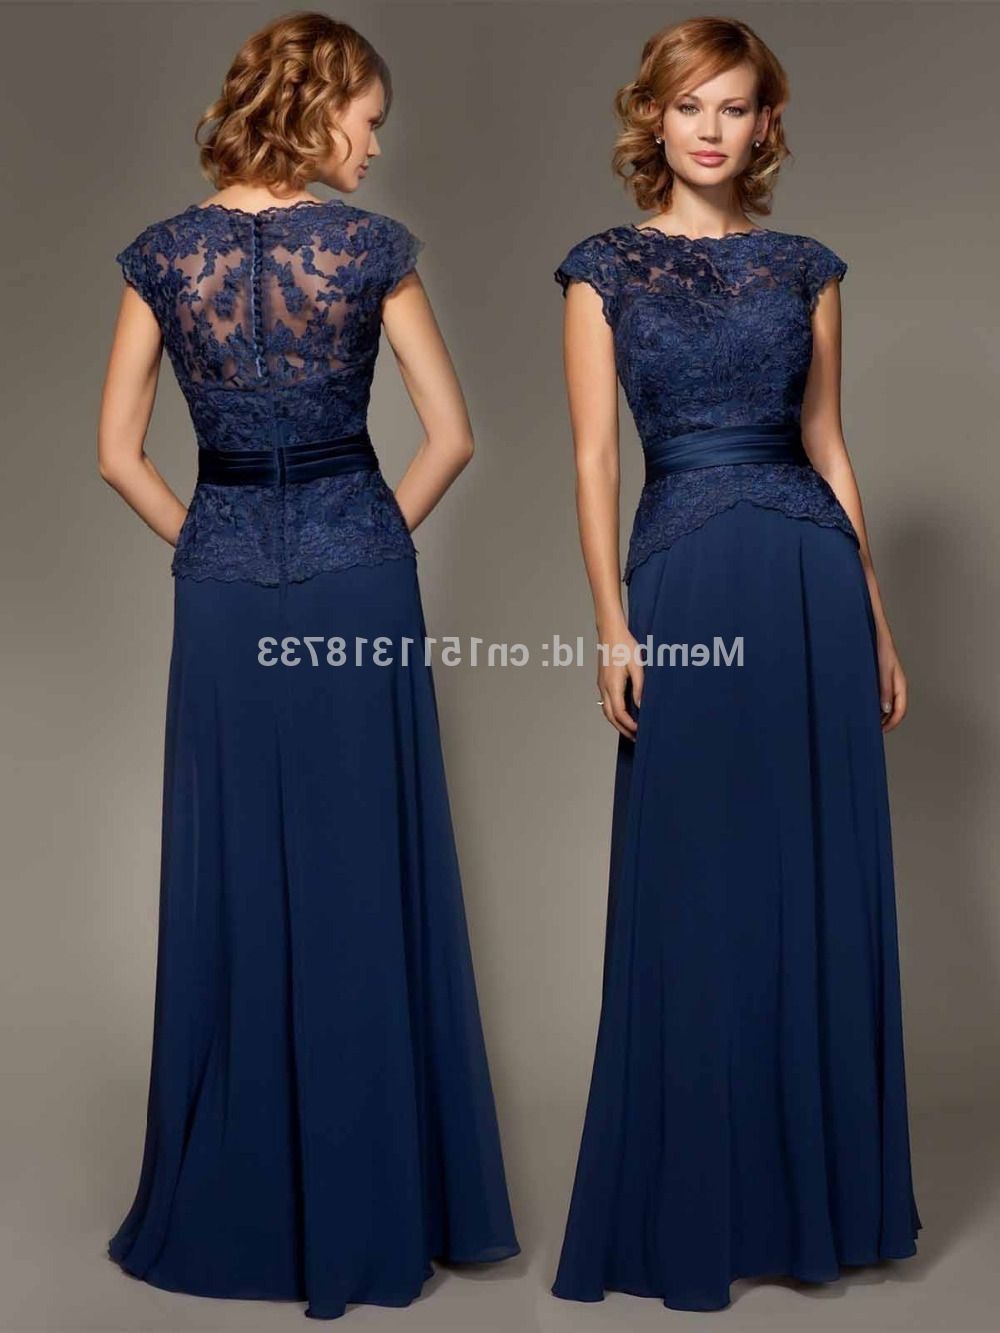 Navy blue bridesmaid dresses with lace for Navy blue maxi dress for wedding